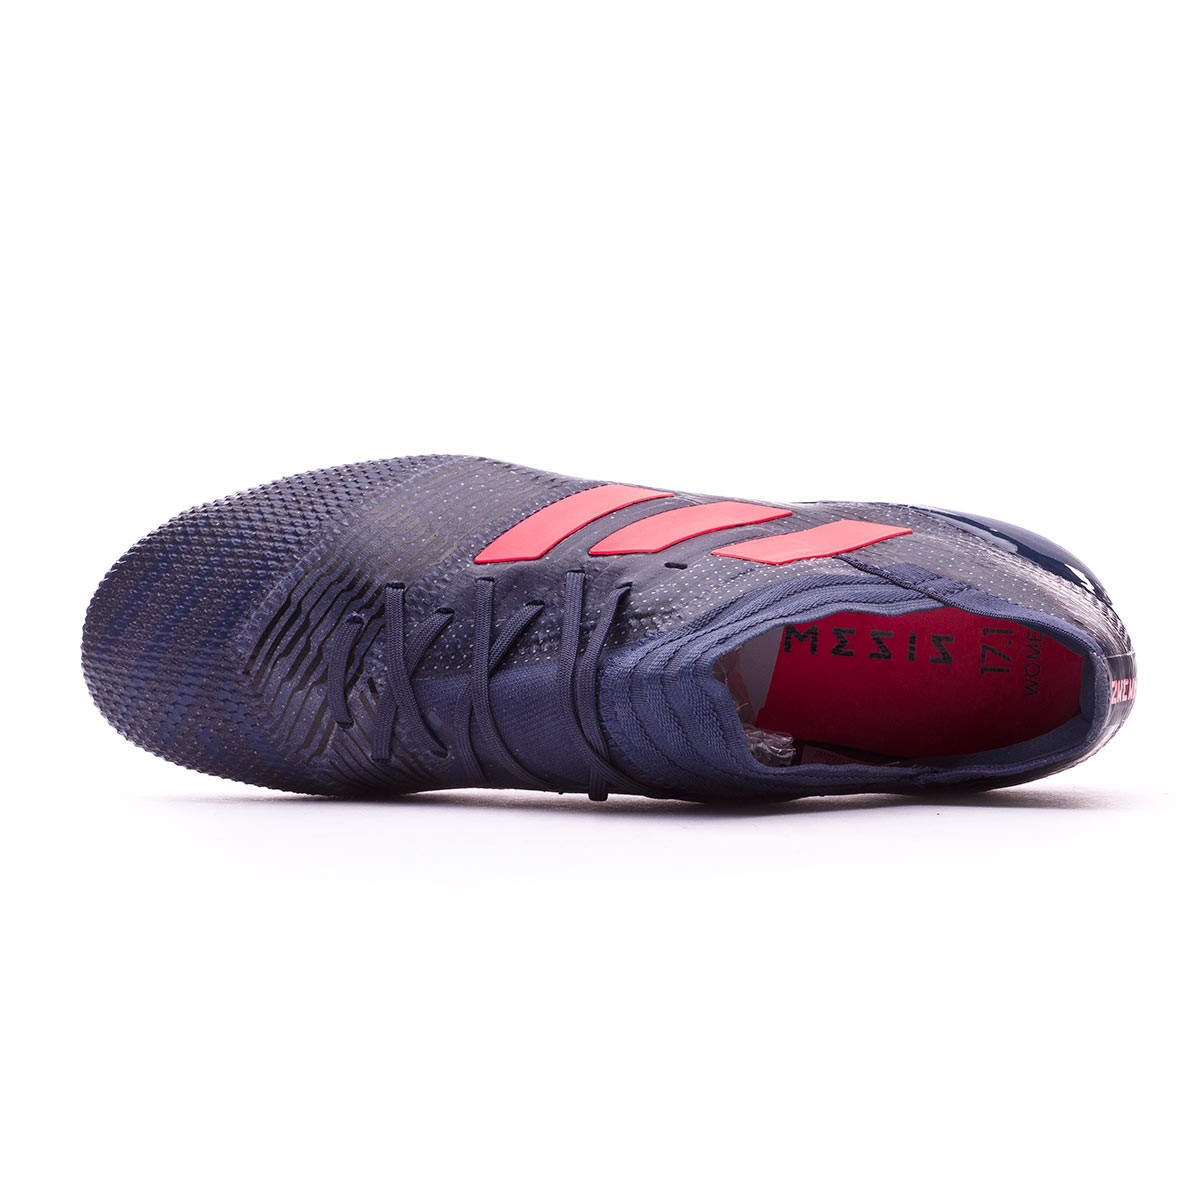 a831d29e8f4 Football Boots adidas Woman Nemeziz 17.1 FG Trace blue-Red zest-Core black  - Football store Fútbol Emotion